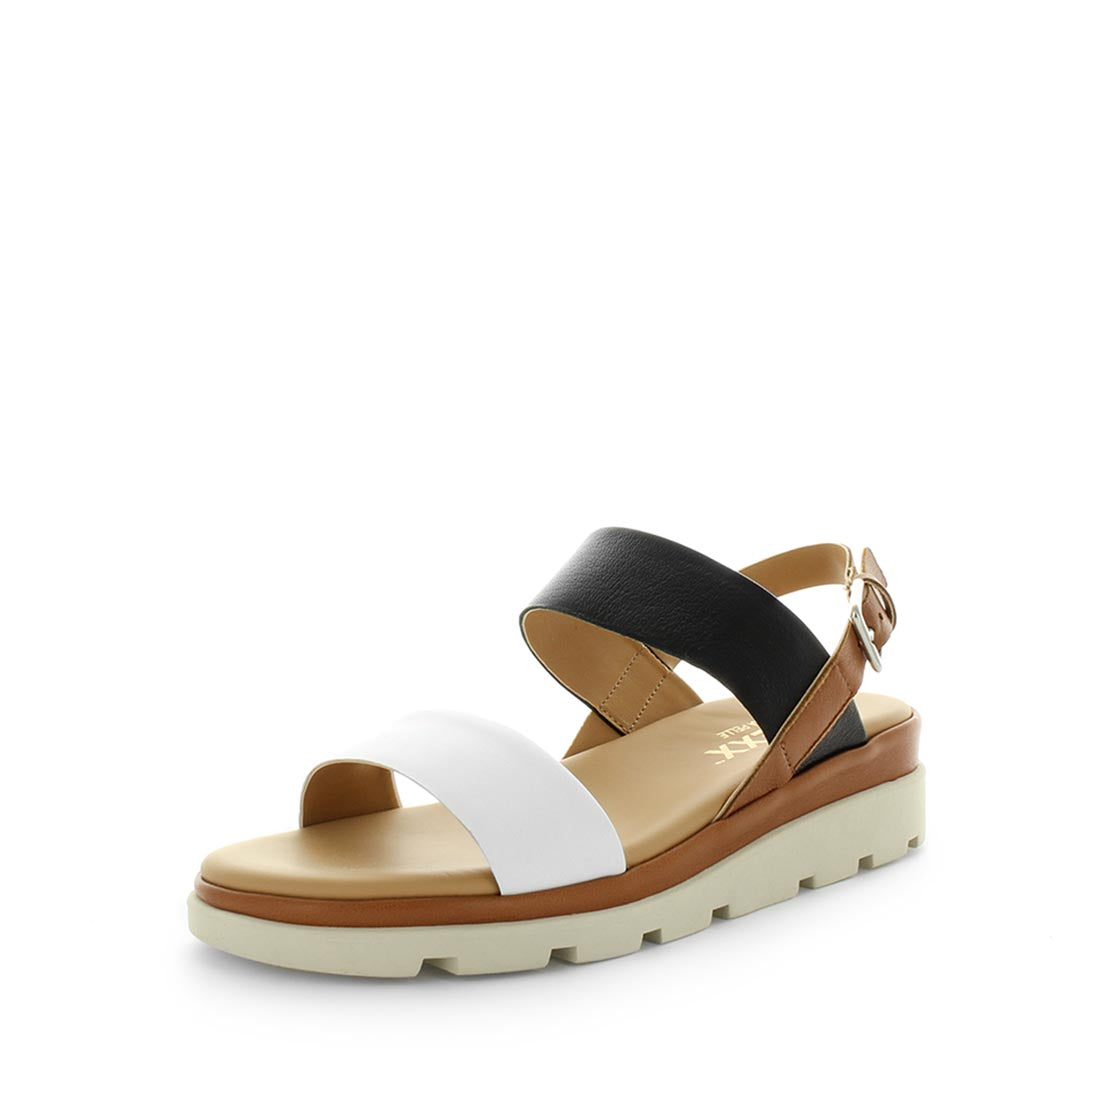 Mod by the flexx - a very comfortable, high quality leather sandal - cross leather upper detail, extra support in the insole for more cushioning, elastic back strap for fit and a trendy and stylish design  -womens shoes - womens sandals - comfort sandals - white, black tan